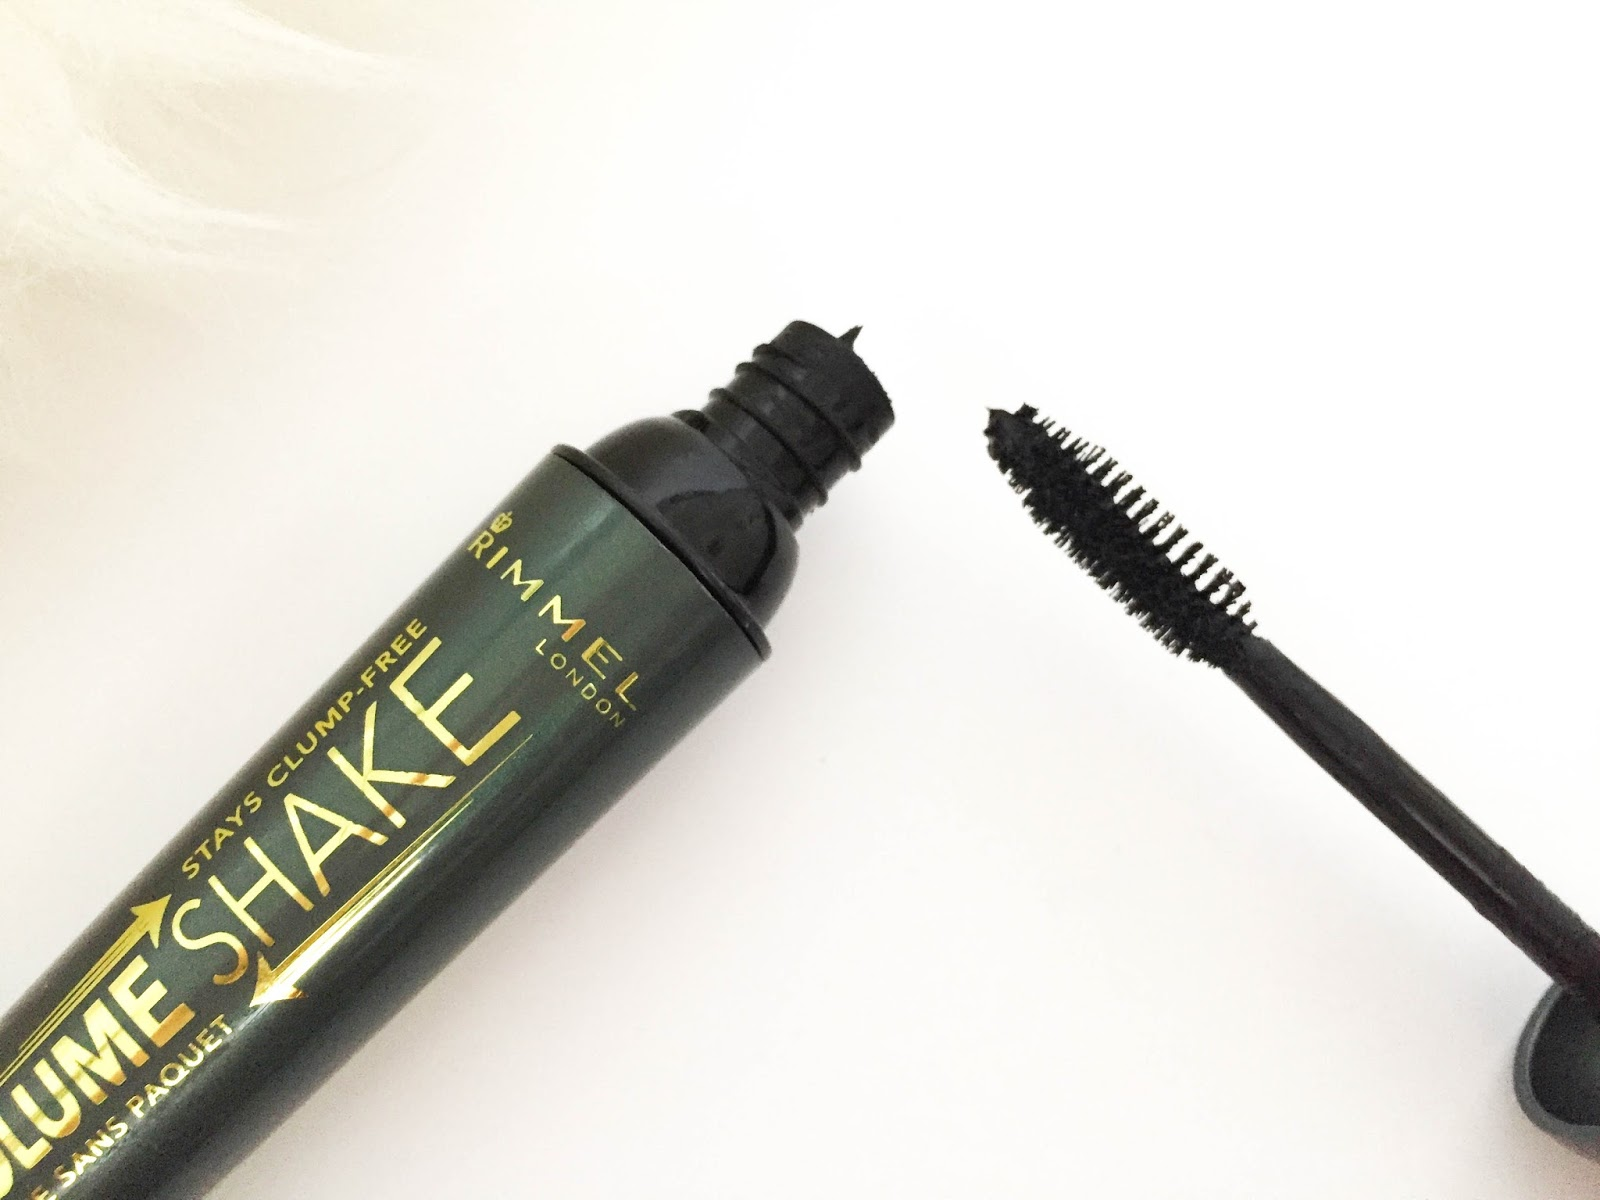 Rimmel London Volume Shake Mascara Review